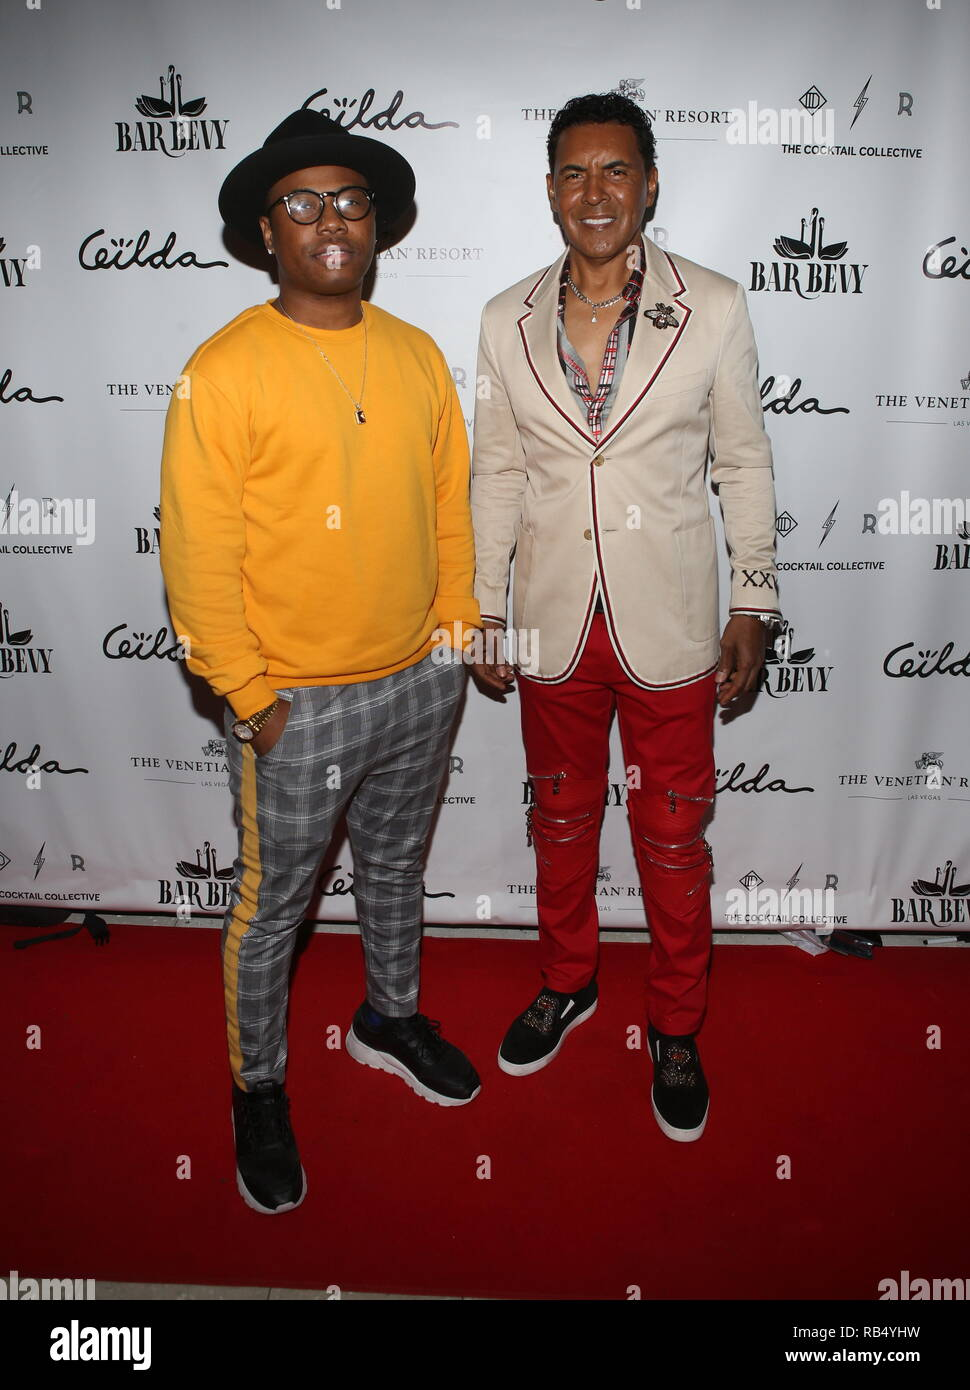 Kings & Queens By Gilda Garza Miami Art Basel 2018  Held at Bevy Bar at Swan  Featuring: Samuel Bright, Phillip West Where: Miami, Florida, United States When: 06 Dec 2018 Credit: Derrick Salters/WENN.com Stock Photo